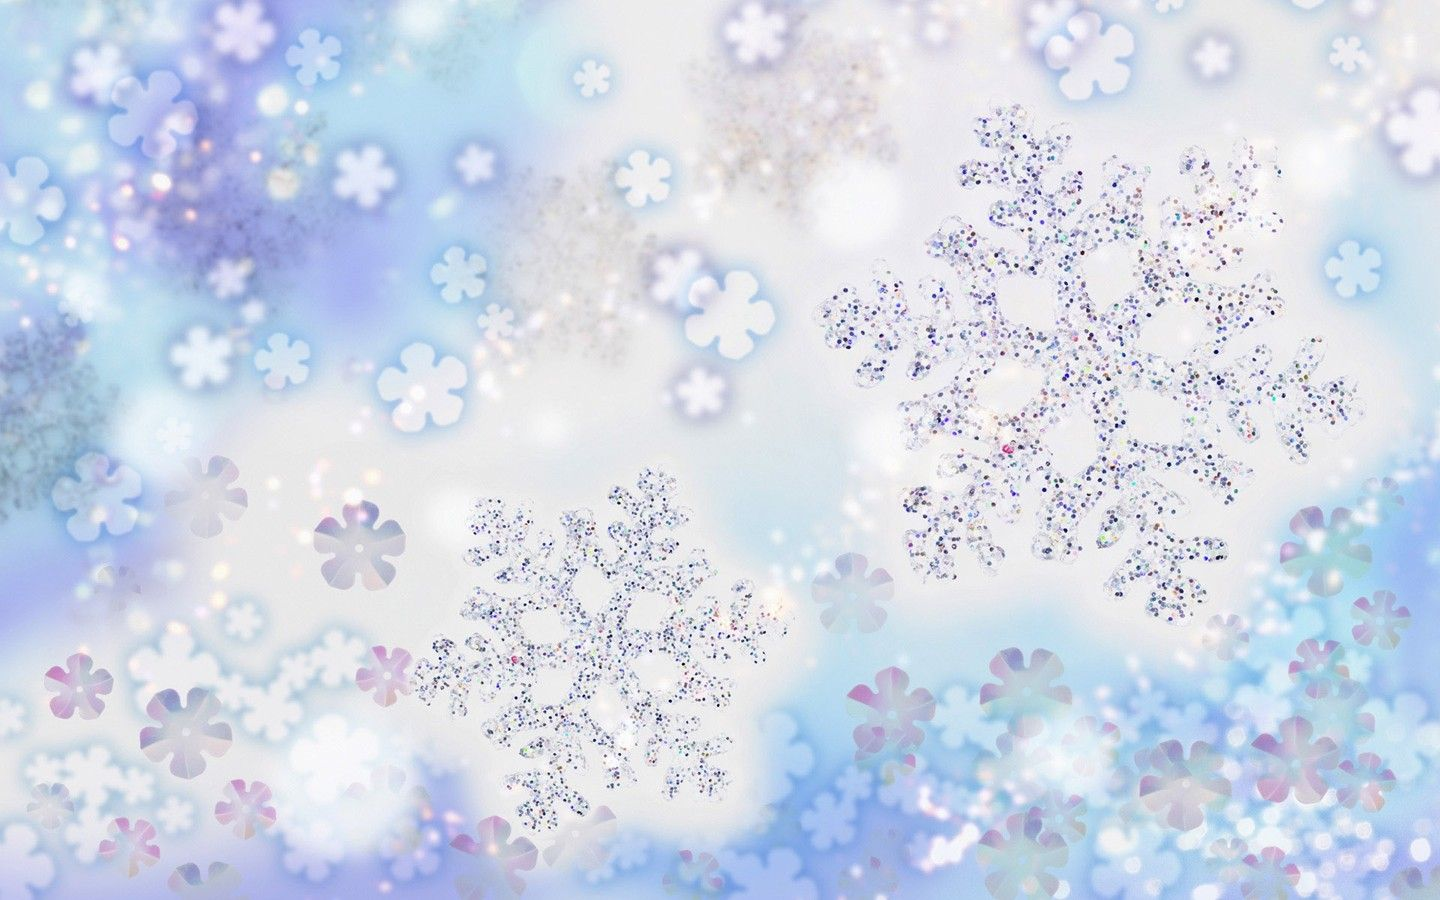 CHRISTMAS SNOWFLAKES Snowflake Wallpaper Christmas Desktop Backgrounds Downloads